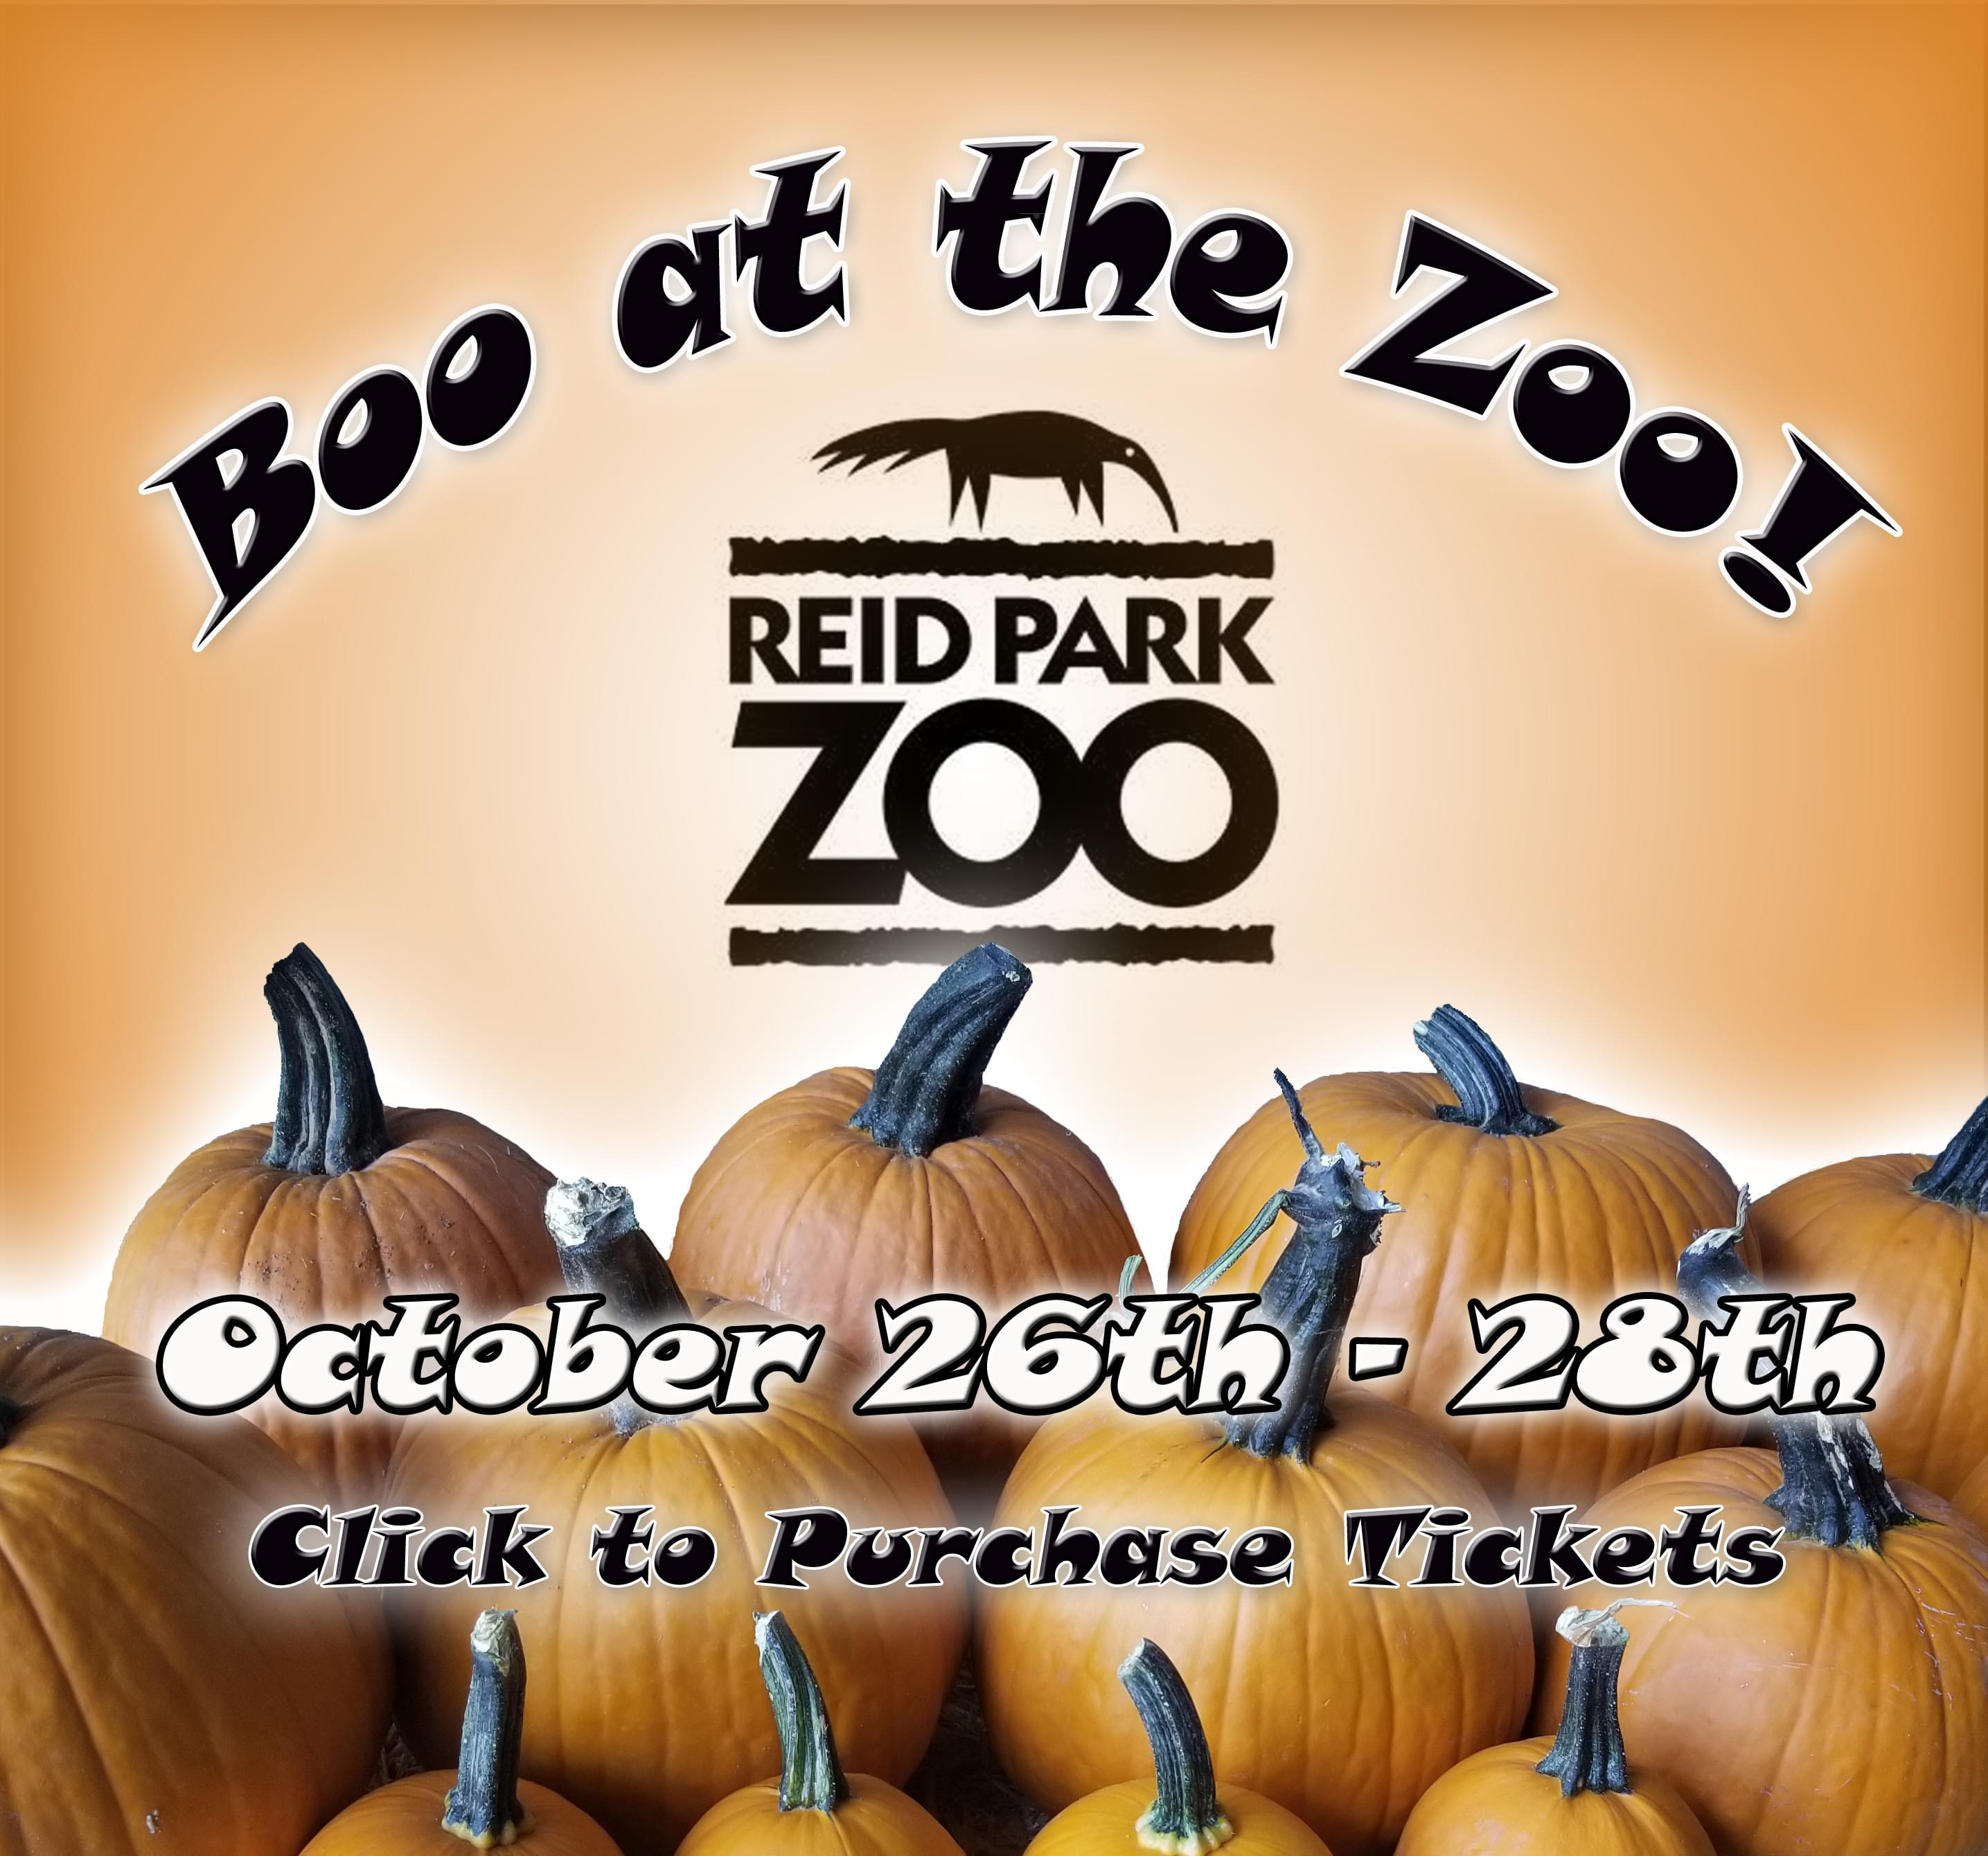 10/26-10/28: Boo at the Zoo